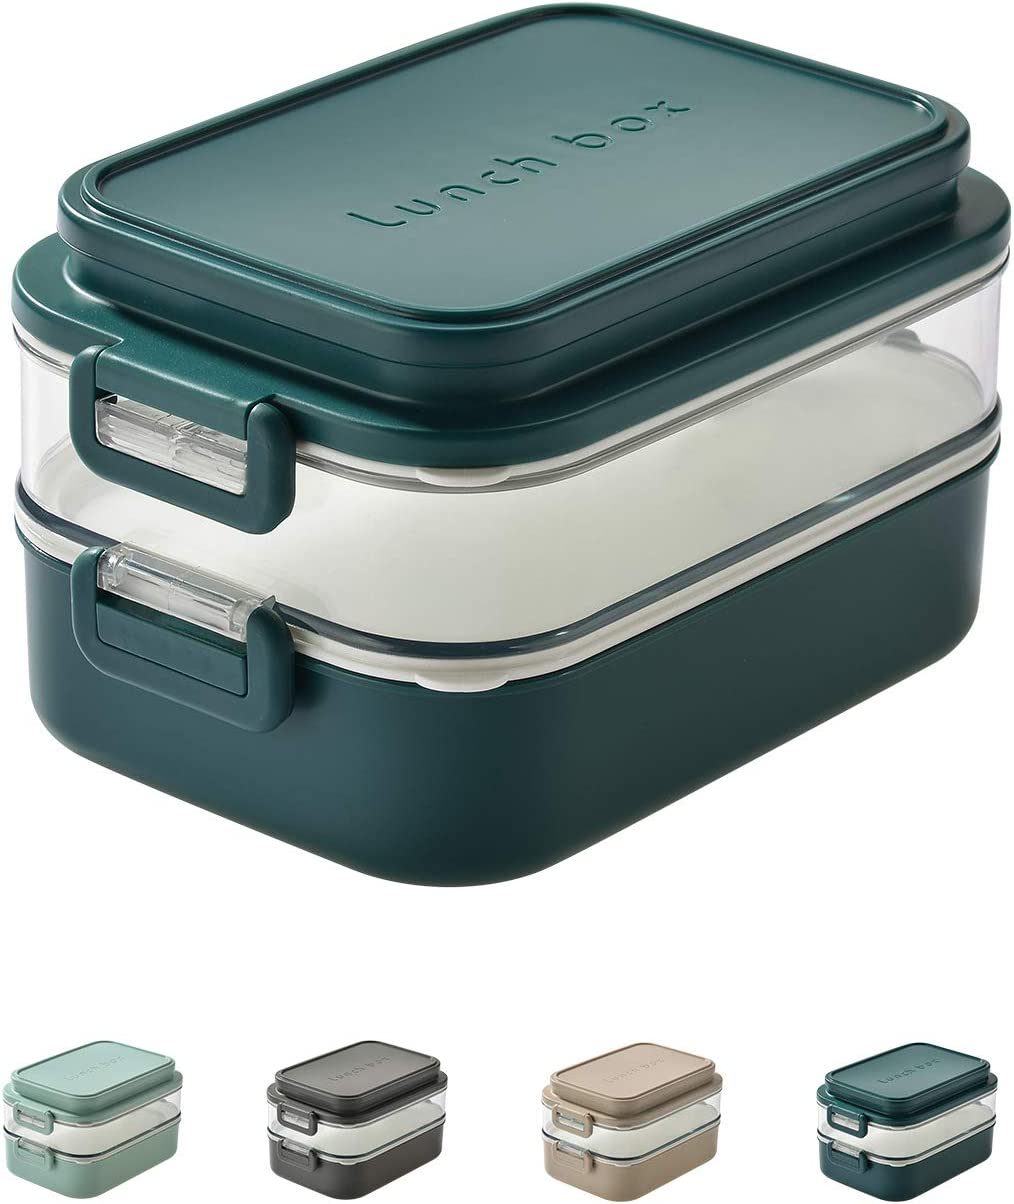 Linoroso-Dual Bento Box for Adults Kids Modern Stackable Lunch Box Meet ALL On-the-go Needs for Lunch Container,Salad Container for Lunch, Snack Box Food Grade Safe PP Material(PEACOCK GREEN)